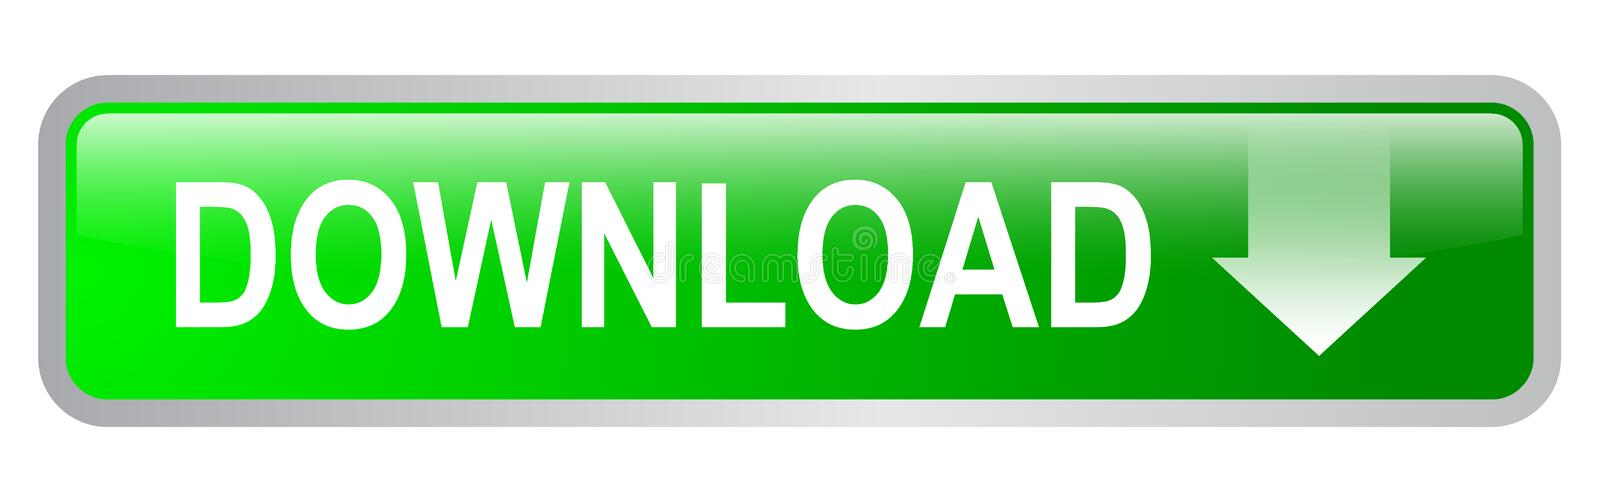 Download button royalty free illustration